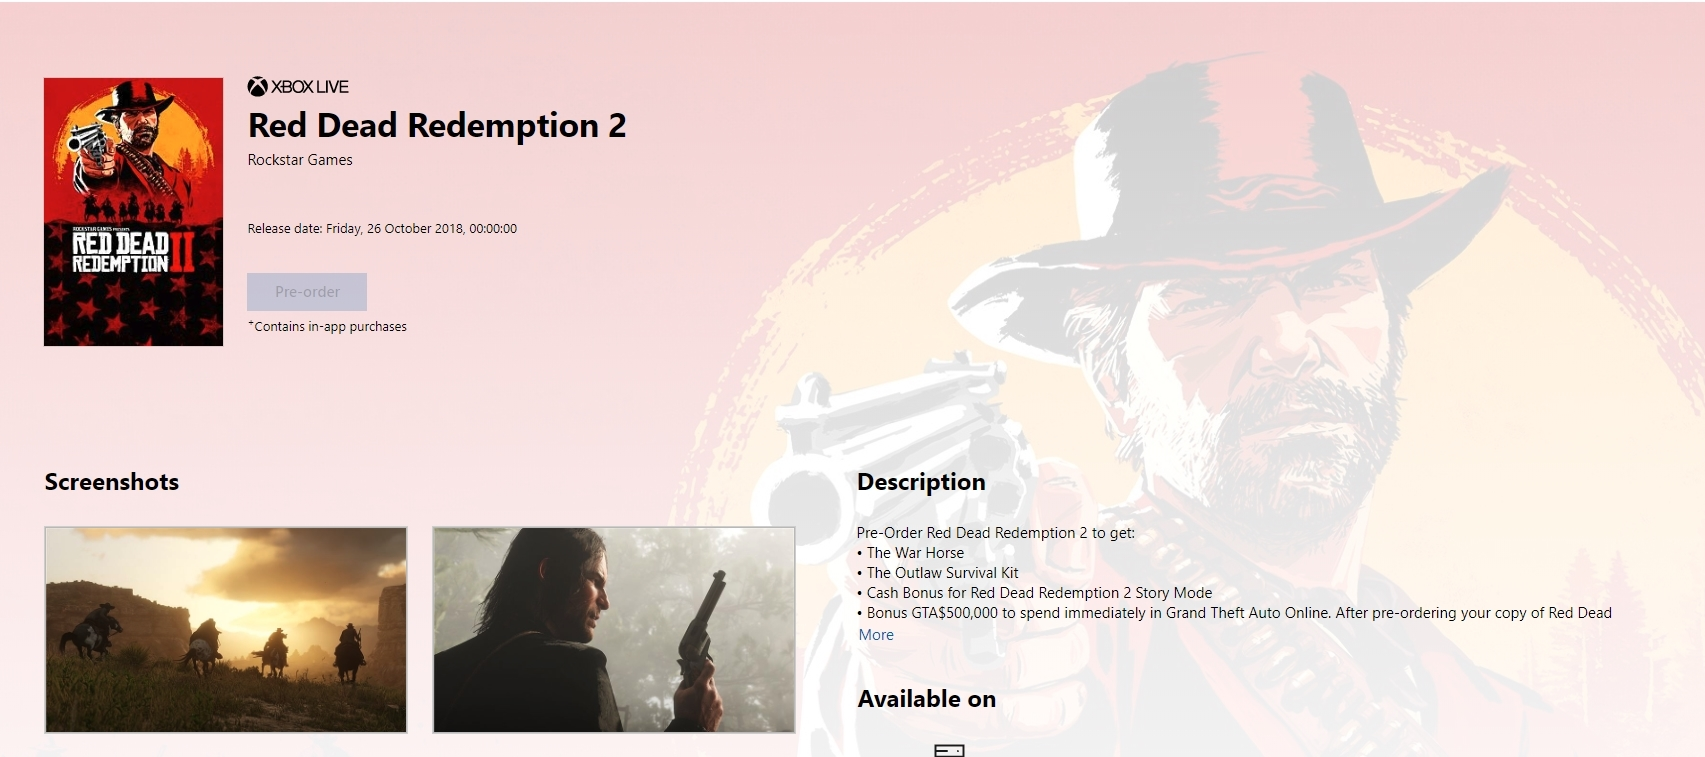 Бонусы за предзаказ Red Dead Redemption 2 на Xbox One и Xbox